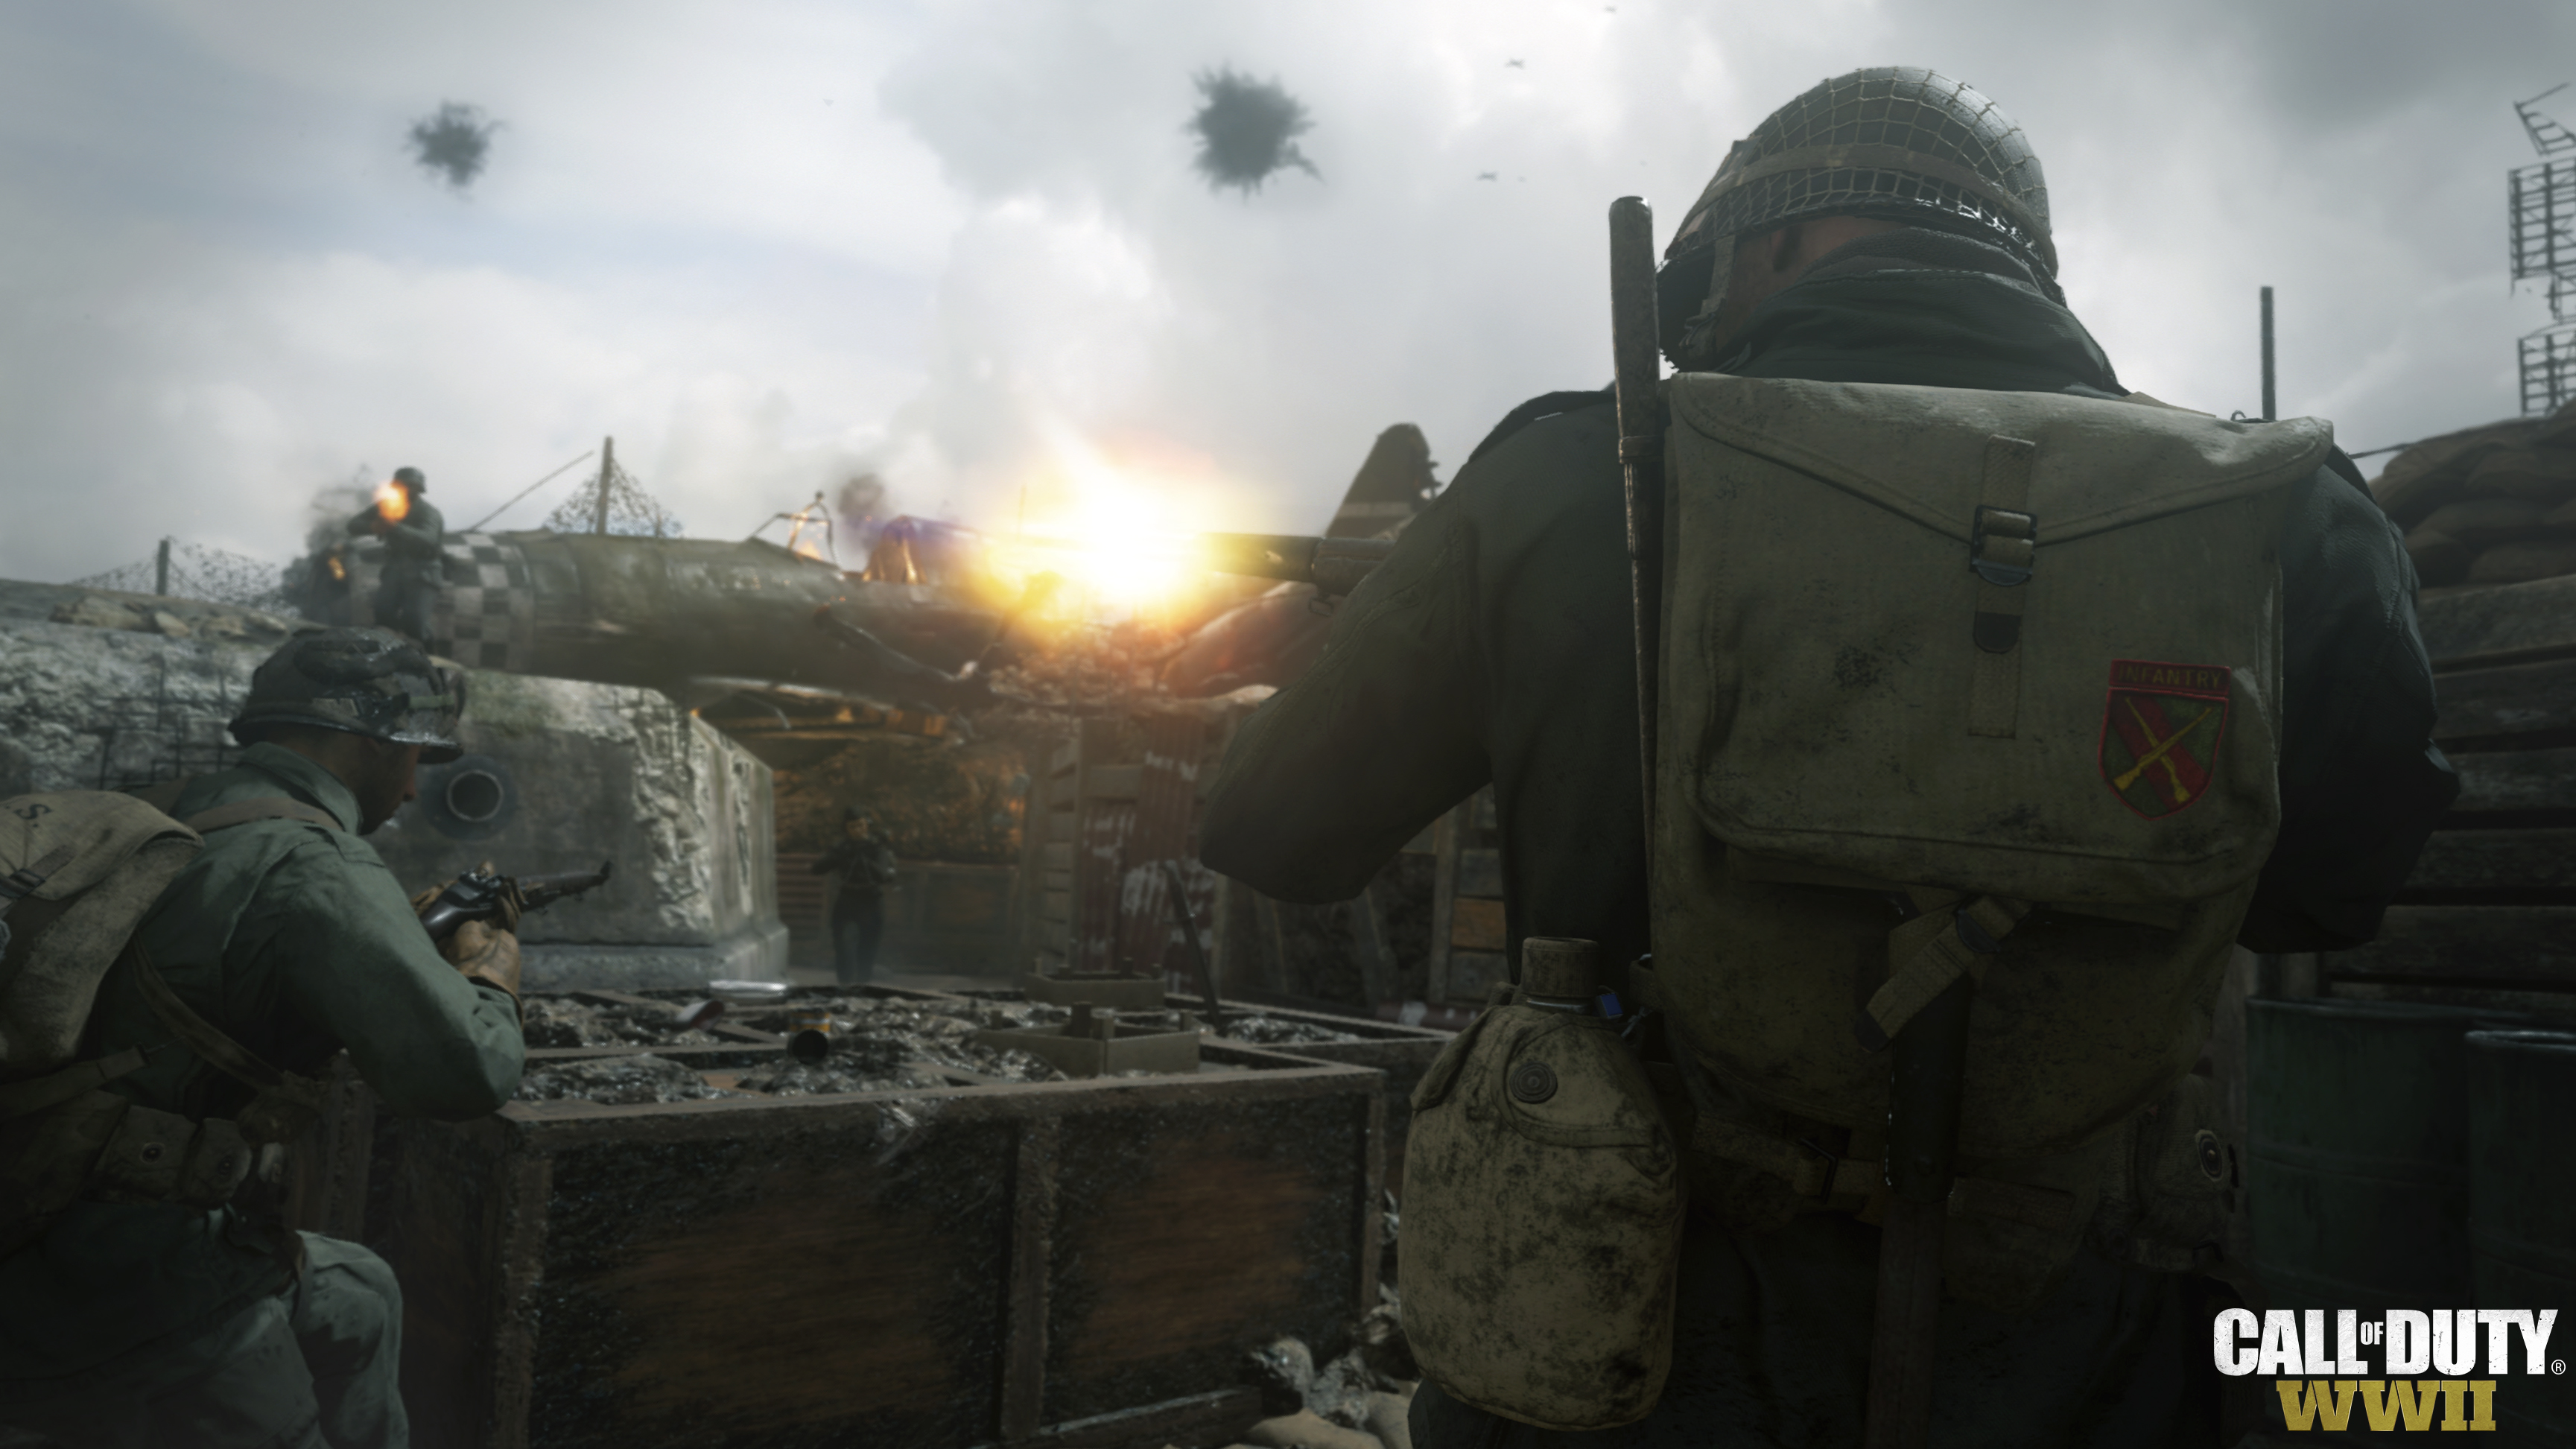 CallofDuty_WWII_E3_Screen_05wm